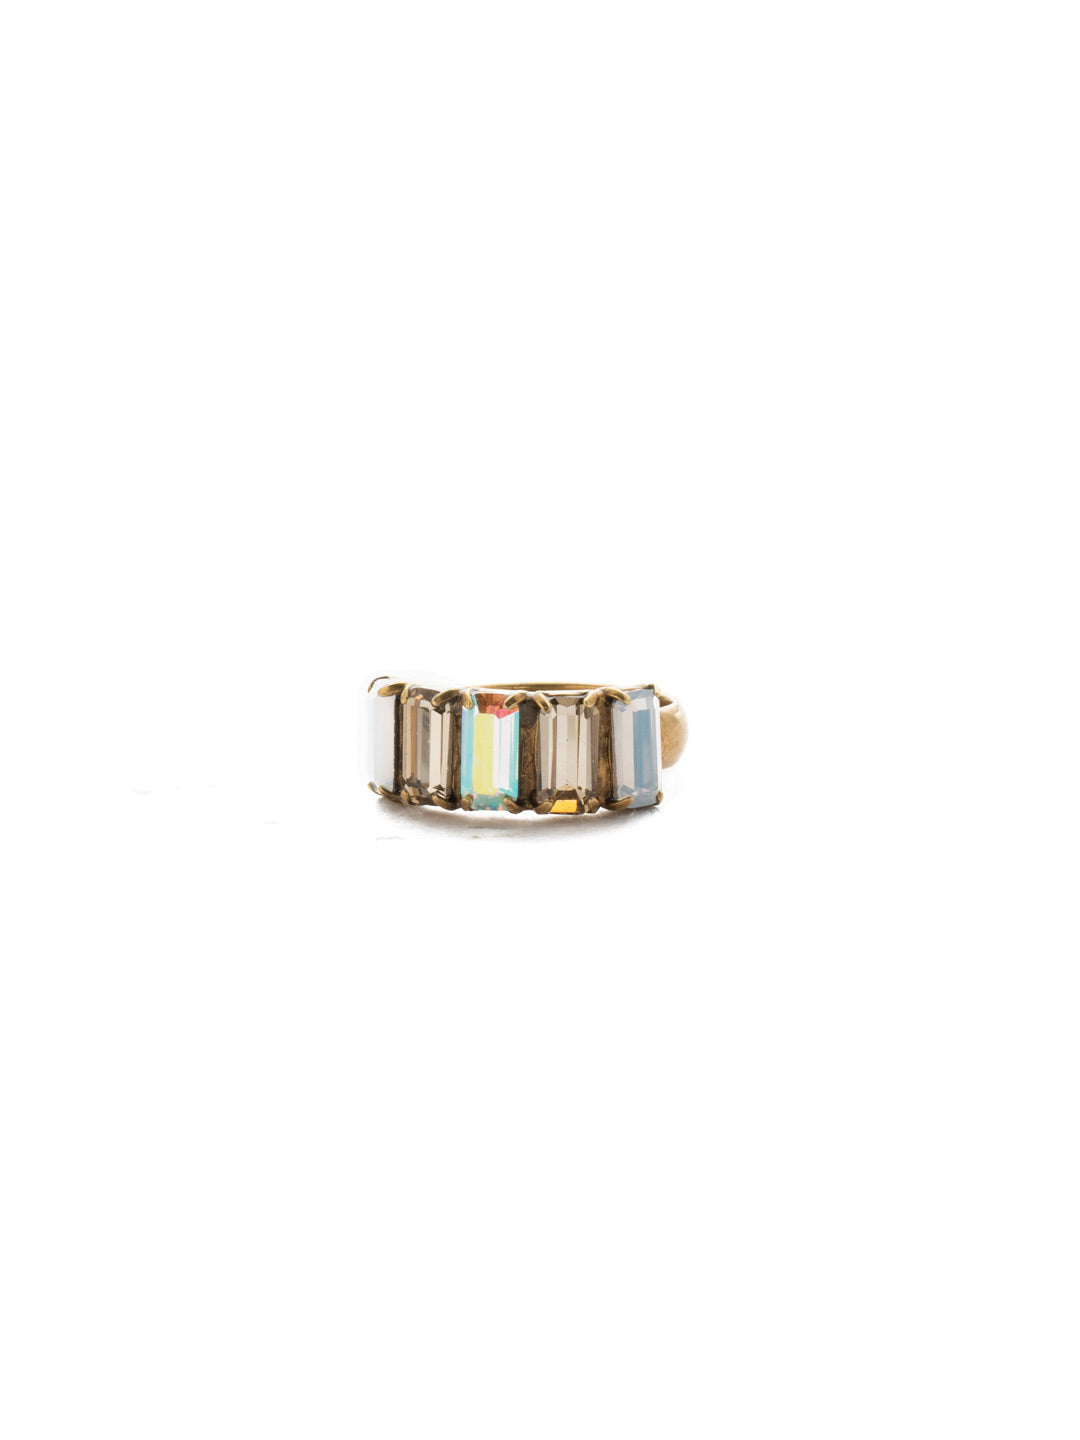 Arden Band Ring - REF29AGROB